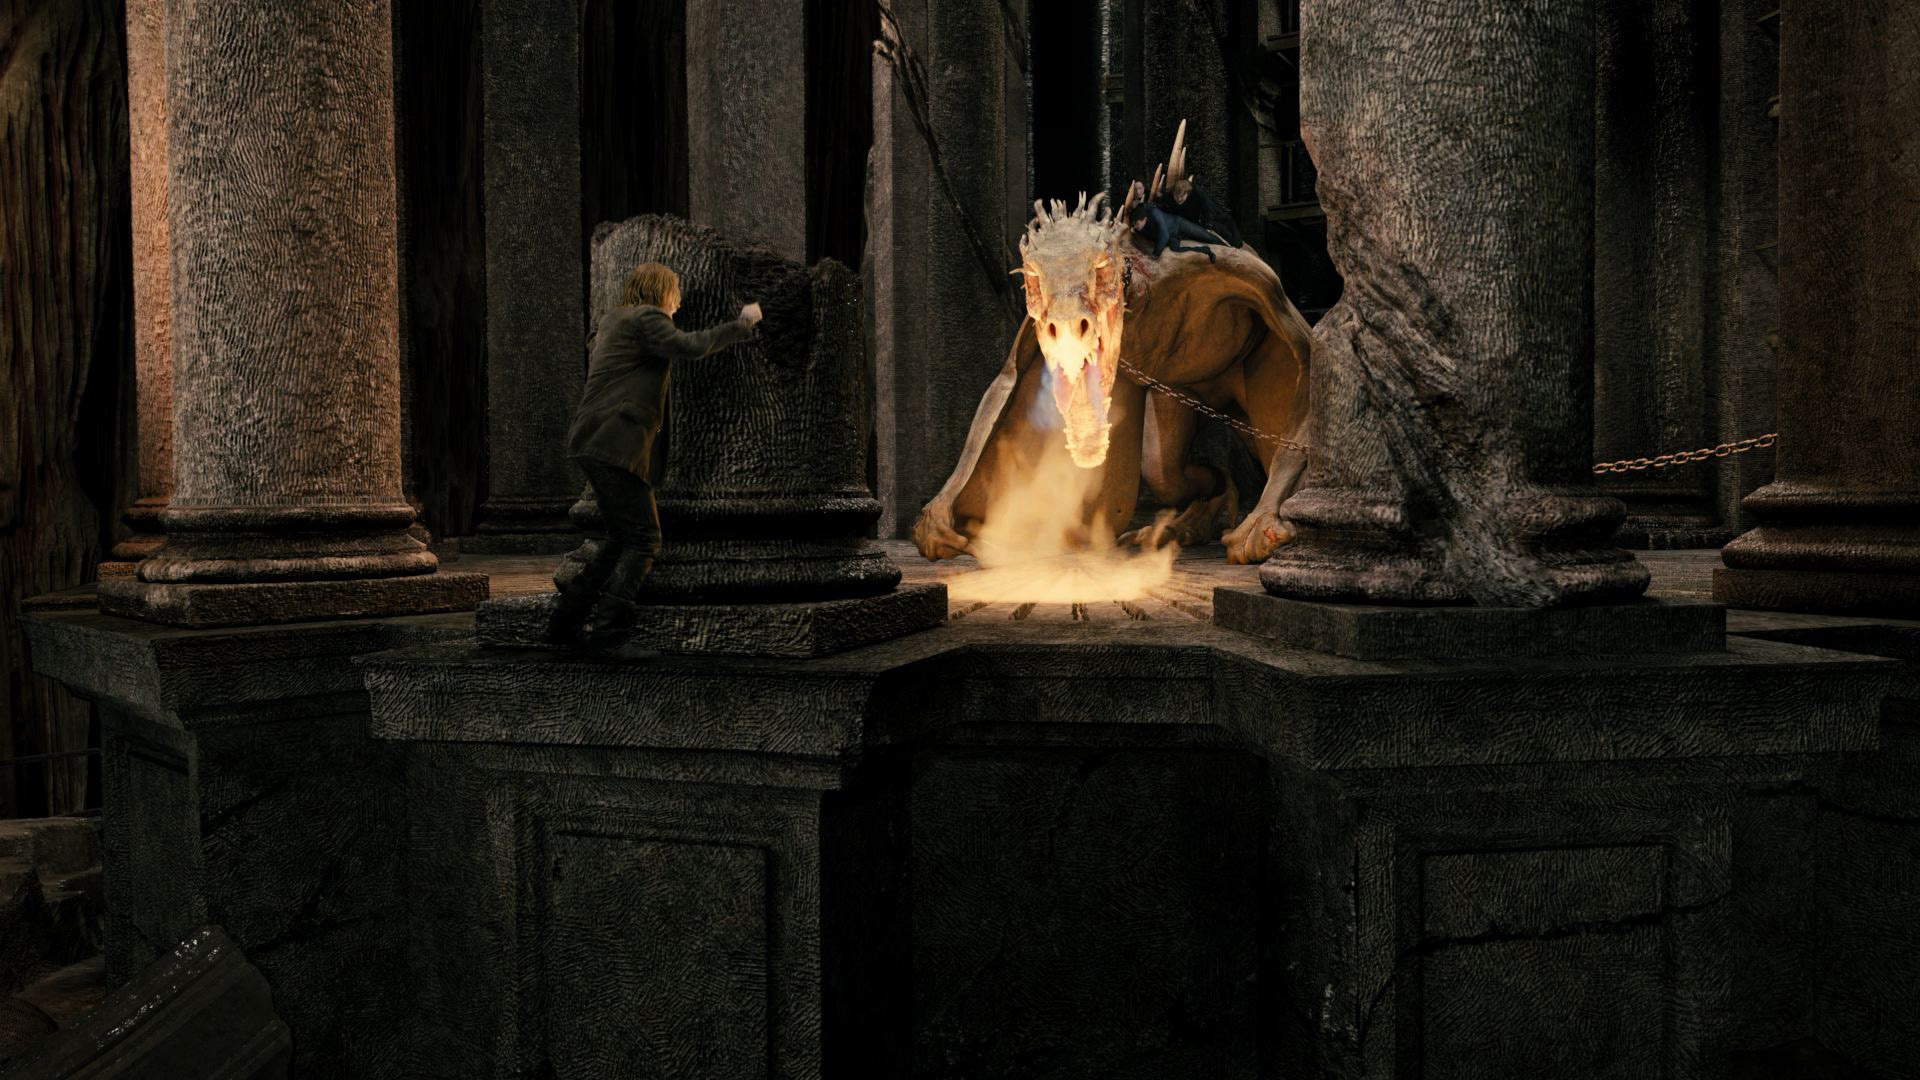 Image from Harry Potter and the Escape from Gringotts - 60-foot, fire-breathing Ukrainian Ironbelly Dragon